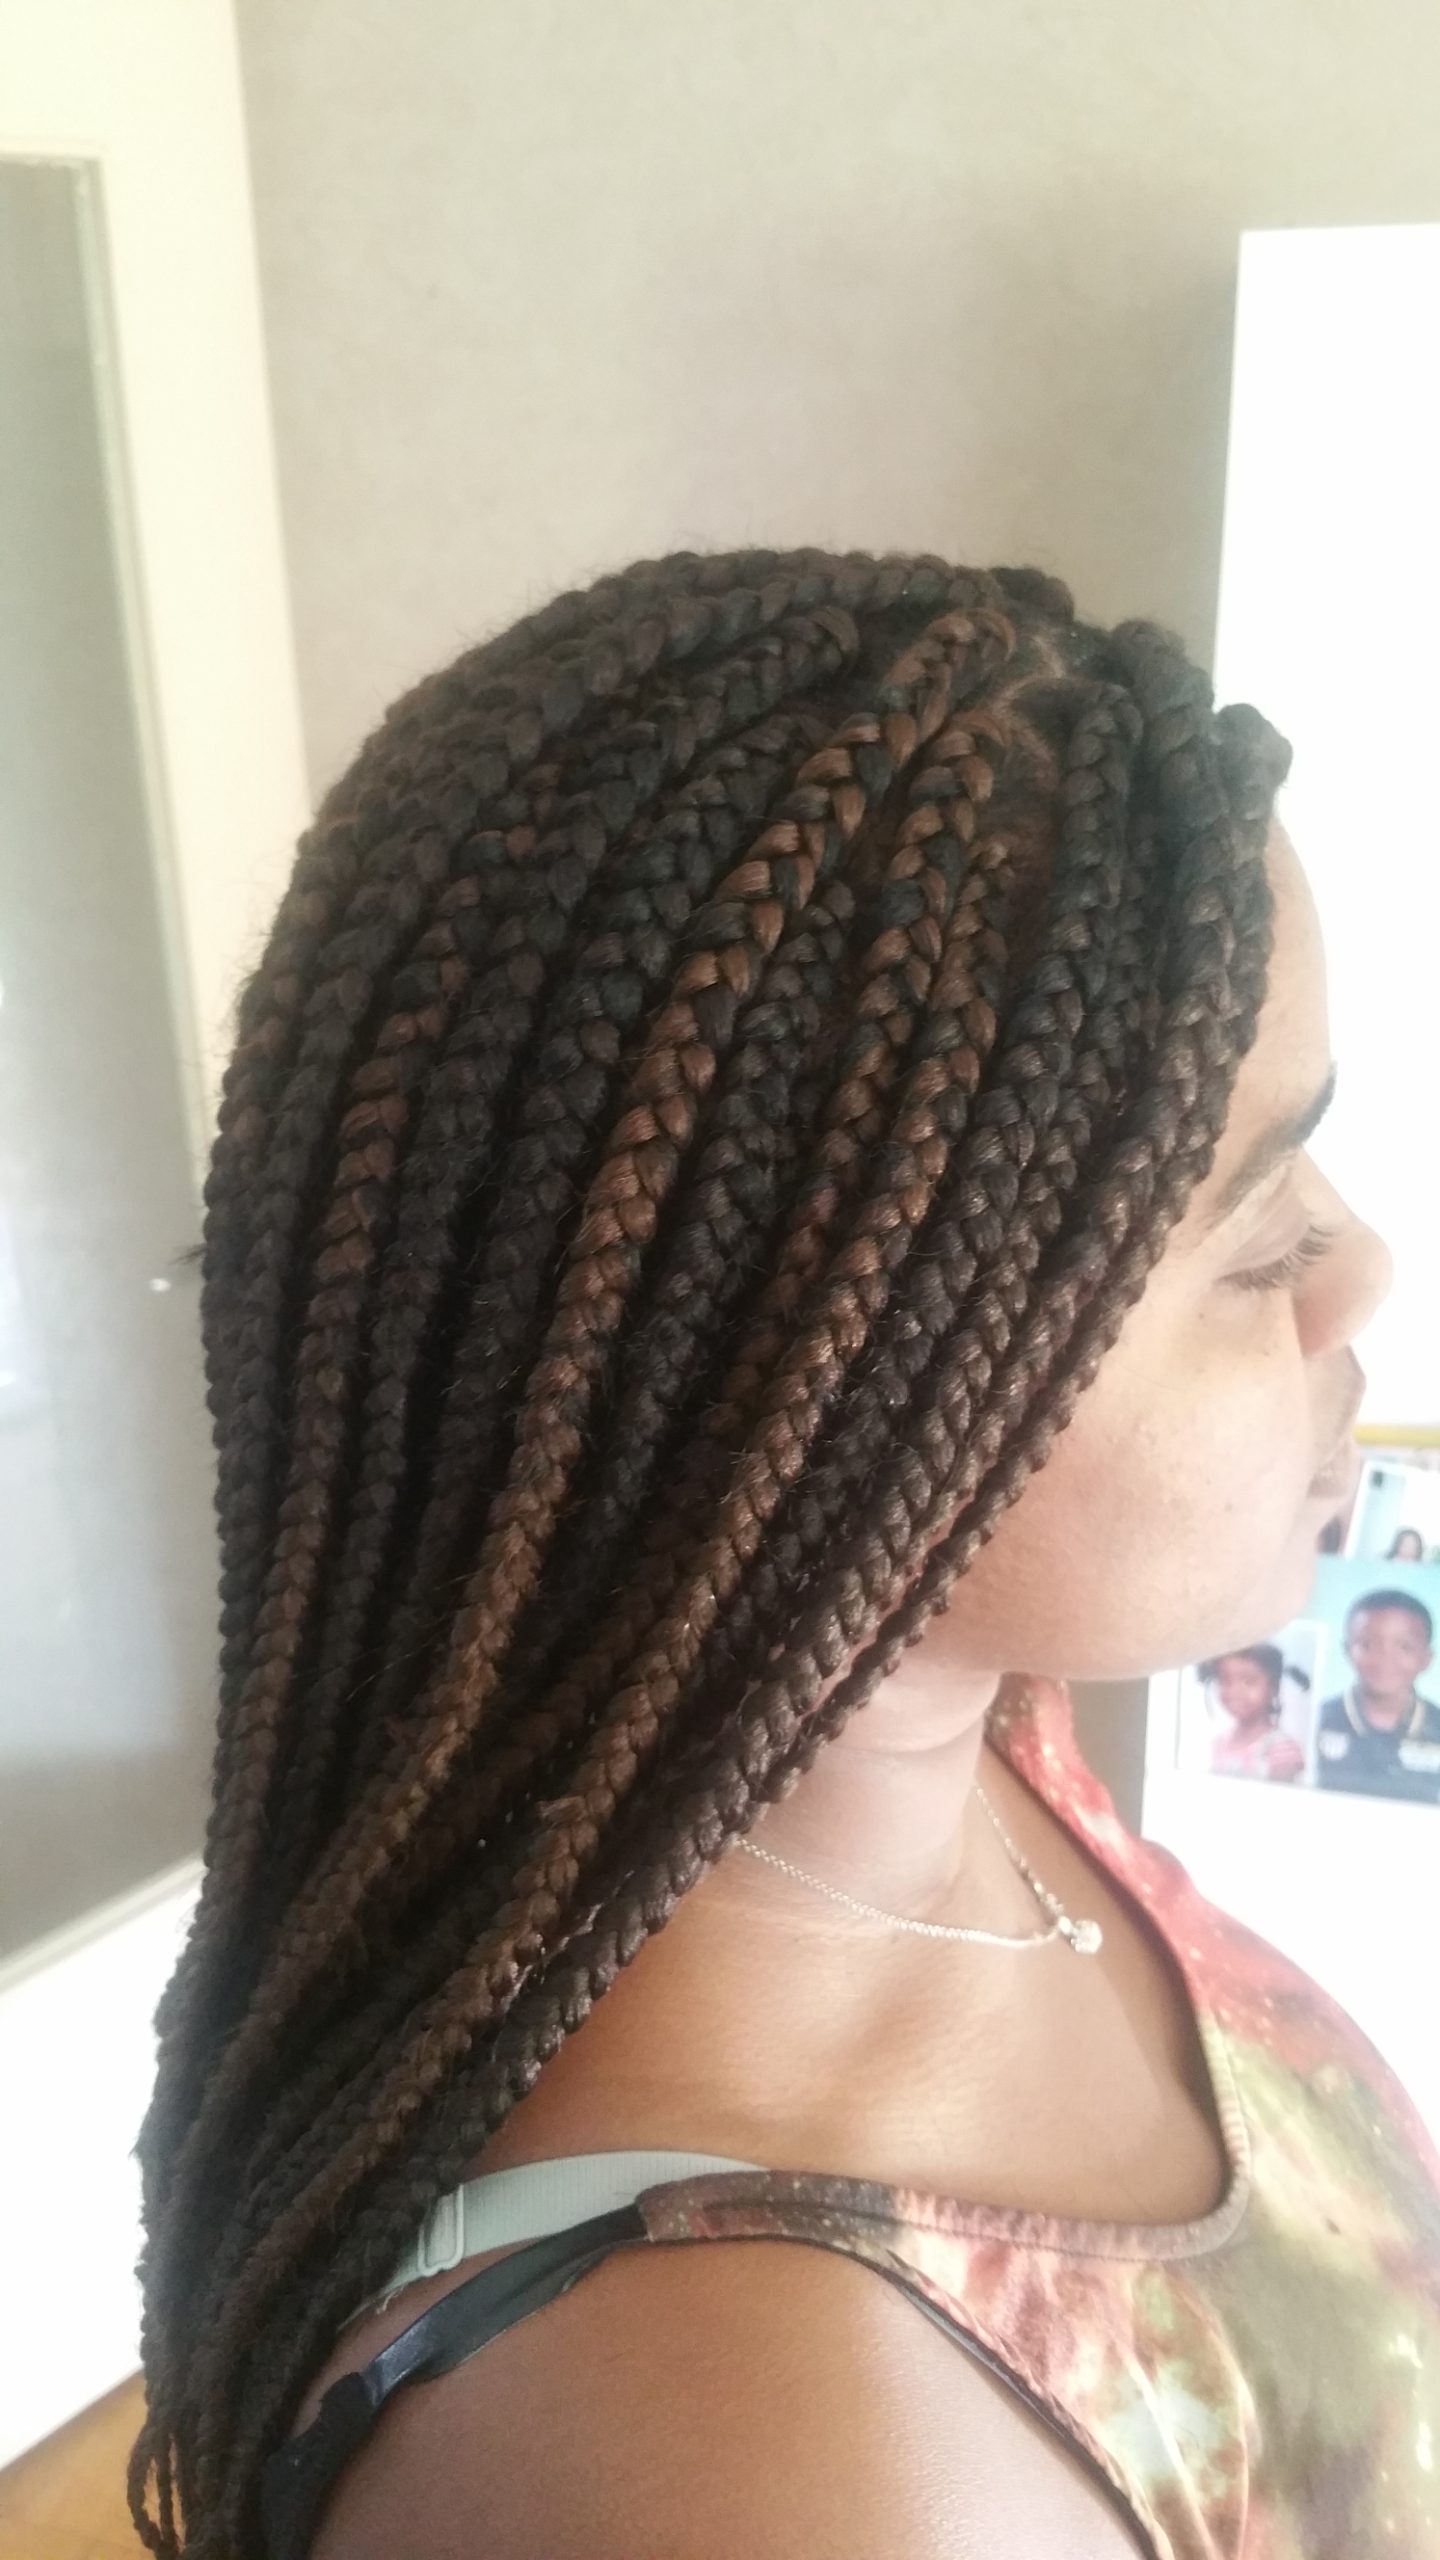 salon de coiffure afro tresse tresses box braids crochet braids vanilles tissages paris 75 77 78 91 92 93 94 95 REMOCRLV